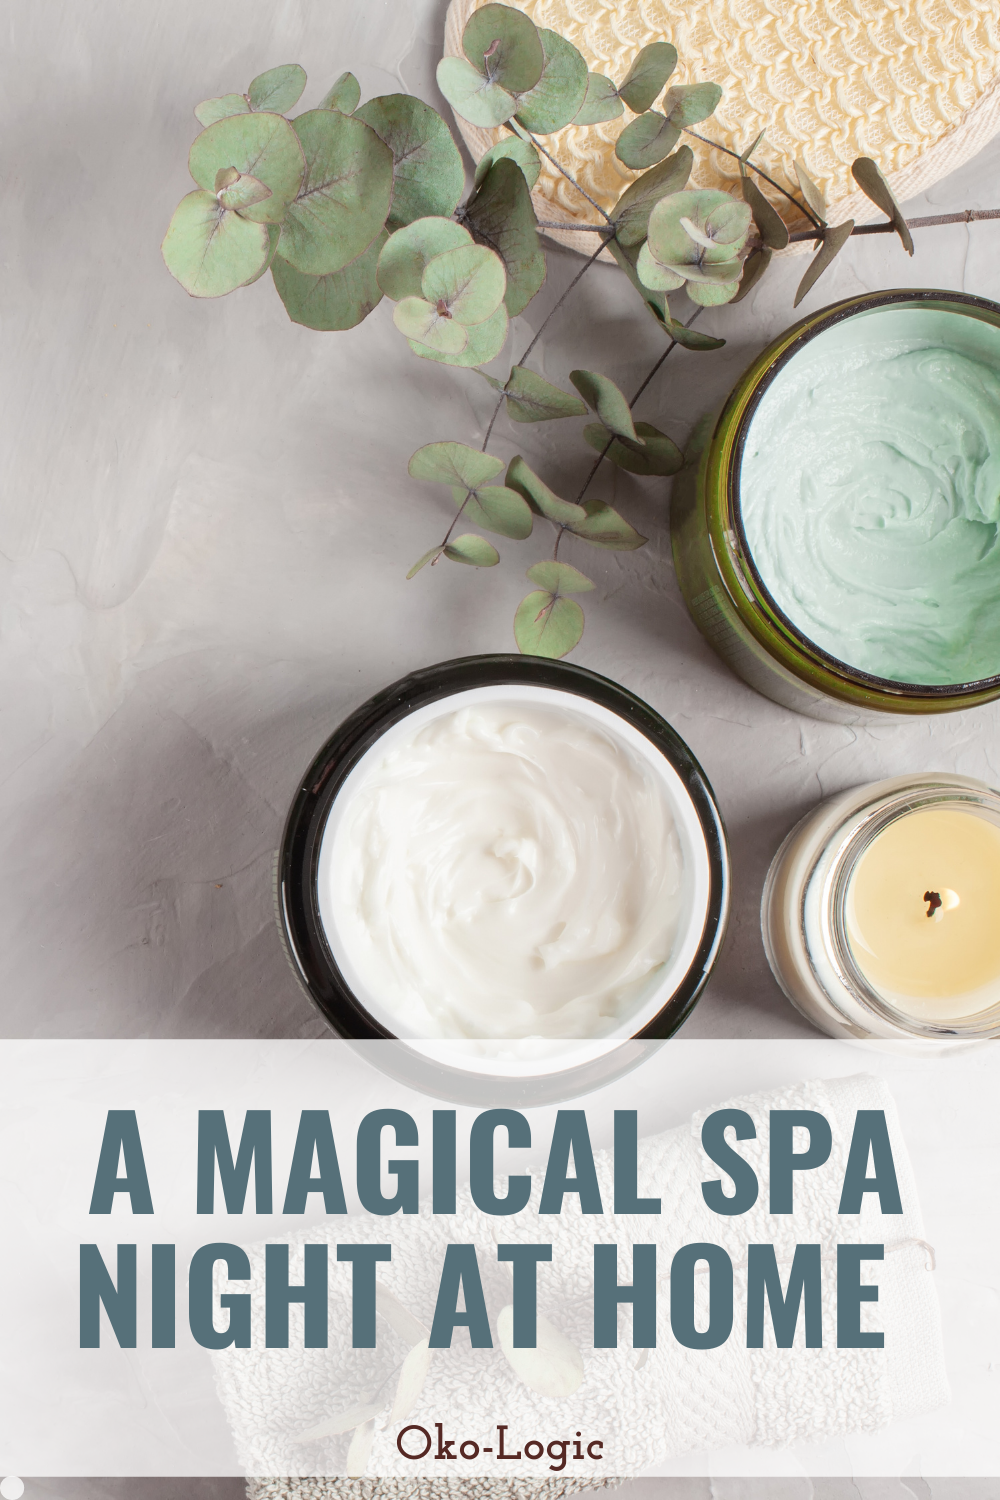 How To Pamper Yourself at Home with a Magical Spa Night